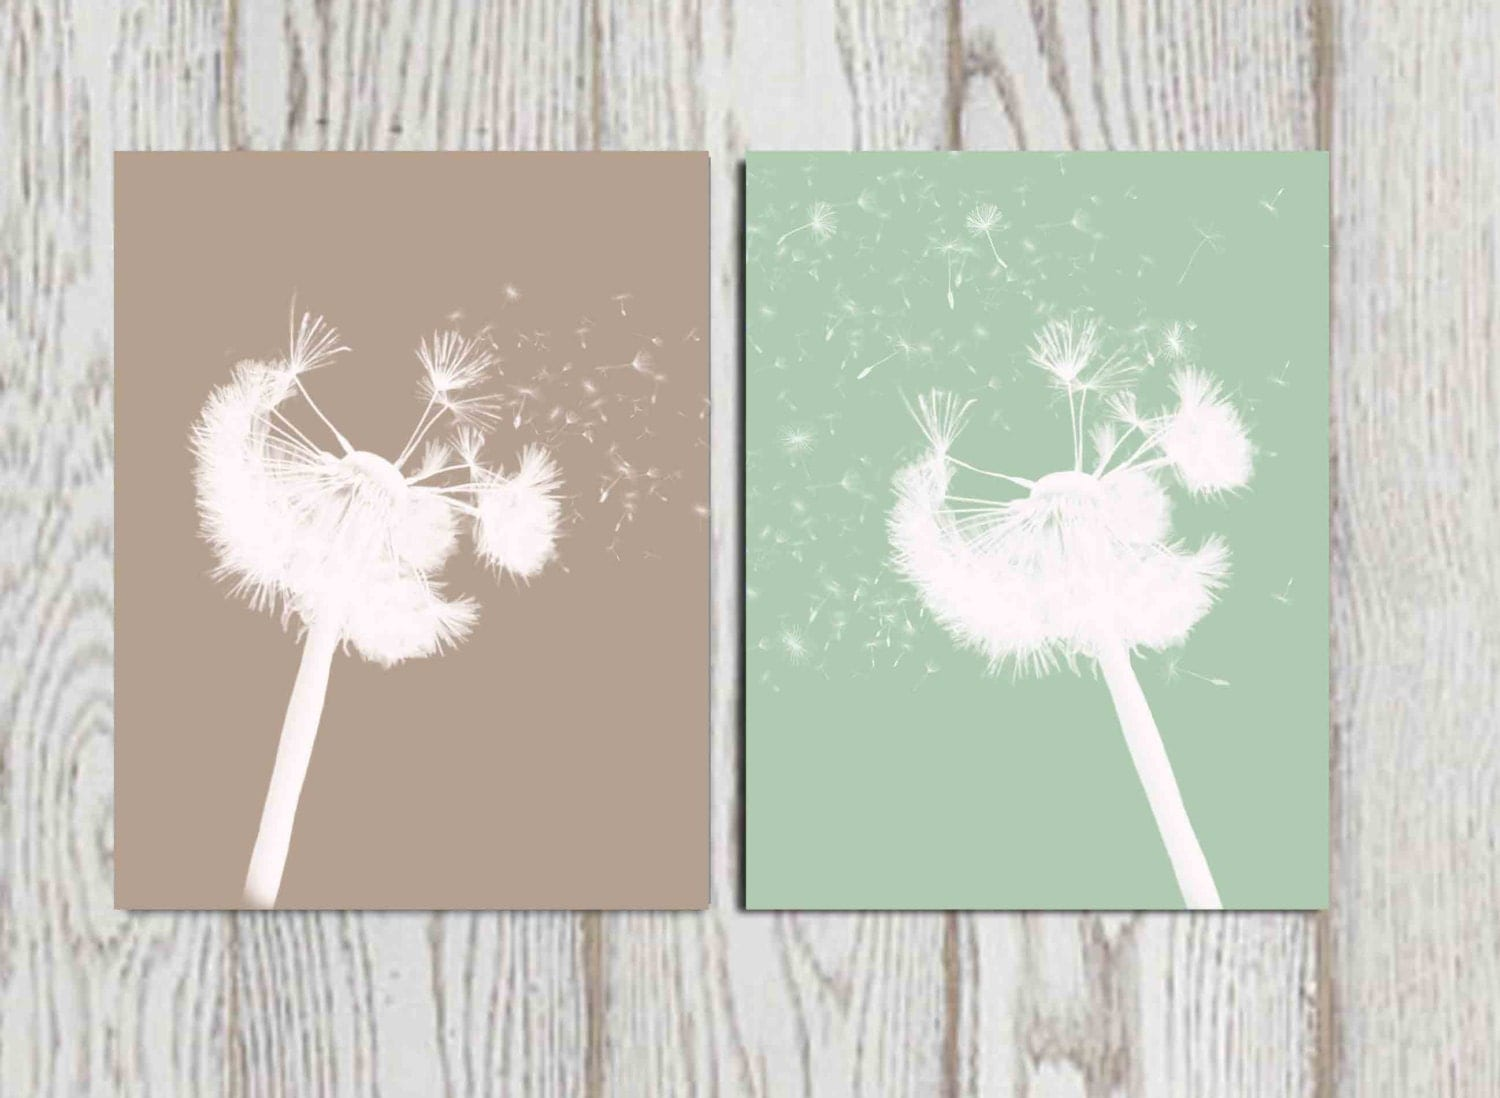 Dandelion Wall Art Print Taupe Mint Green Home Decor Bedroom